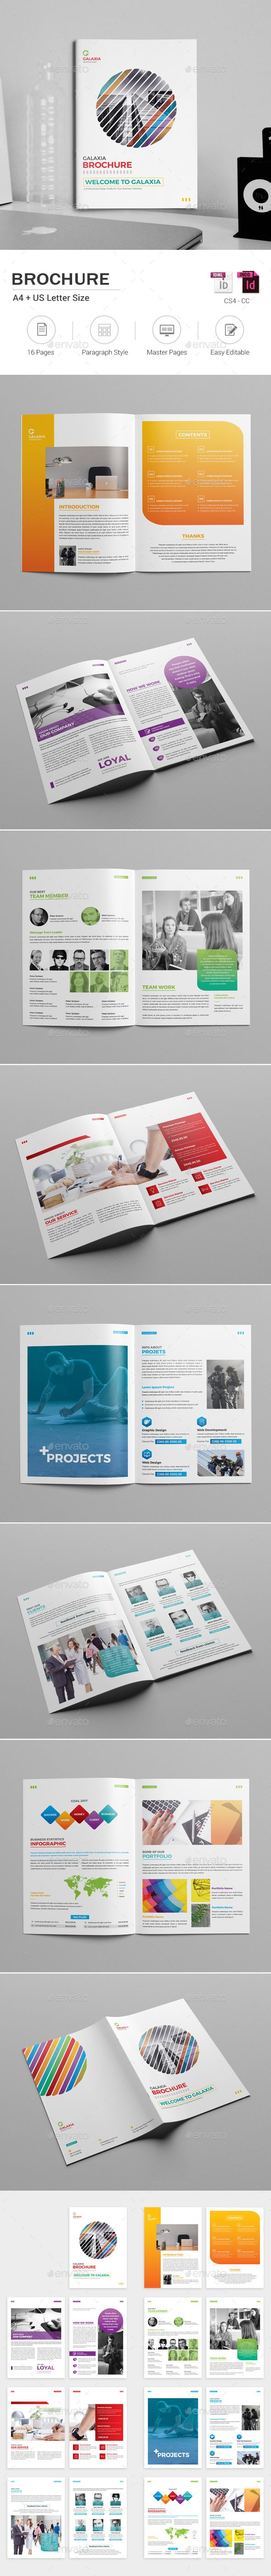 Colorful Brochure - Corporate #Brochures Download here:  https://graphicriver.net/item/colorful-brochure/20018439?ref=alena994